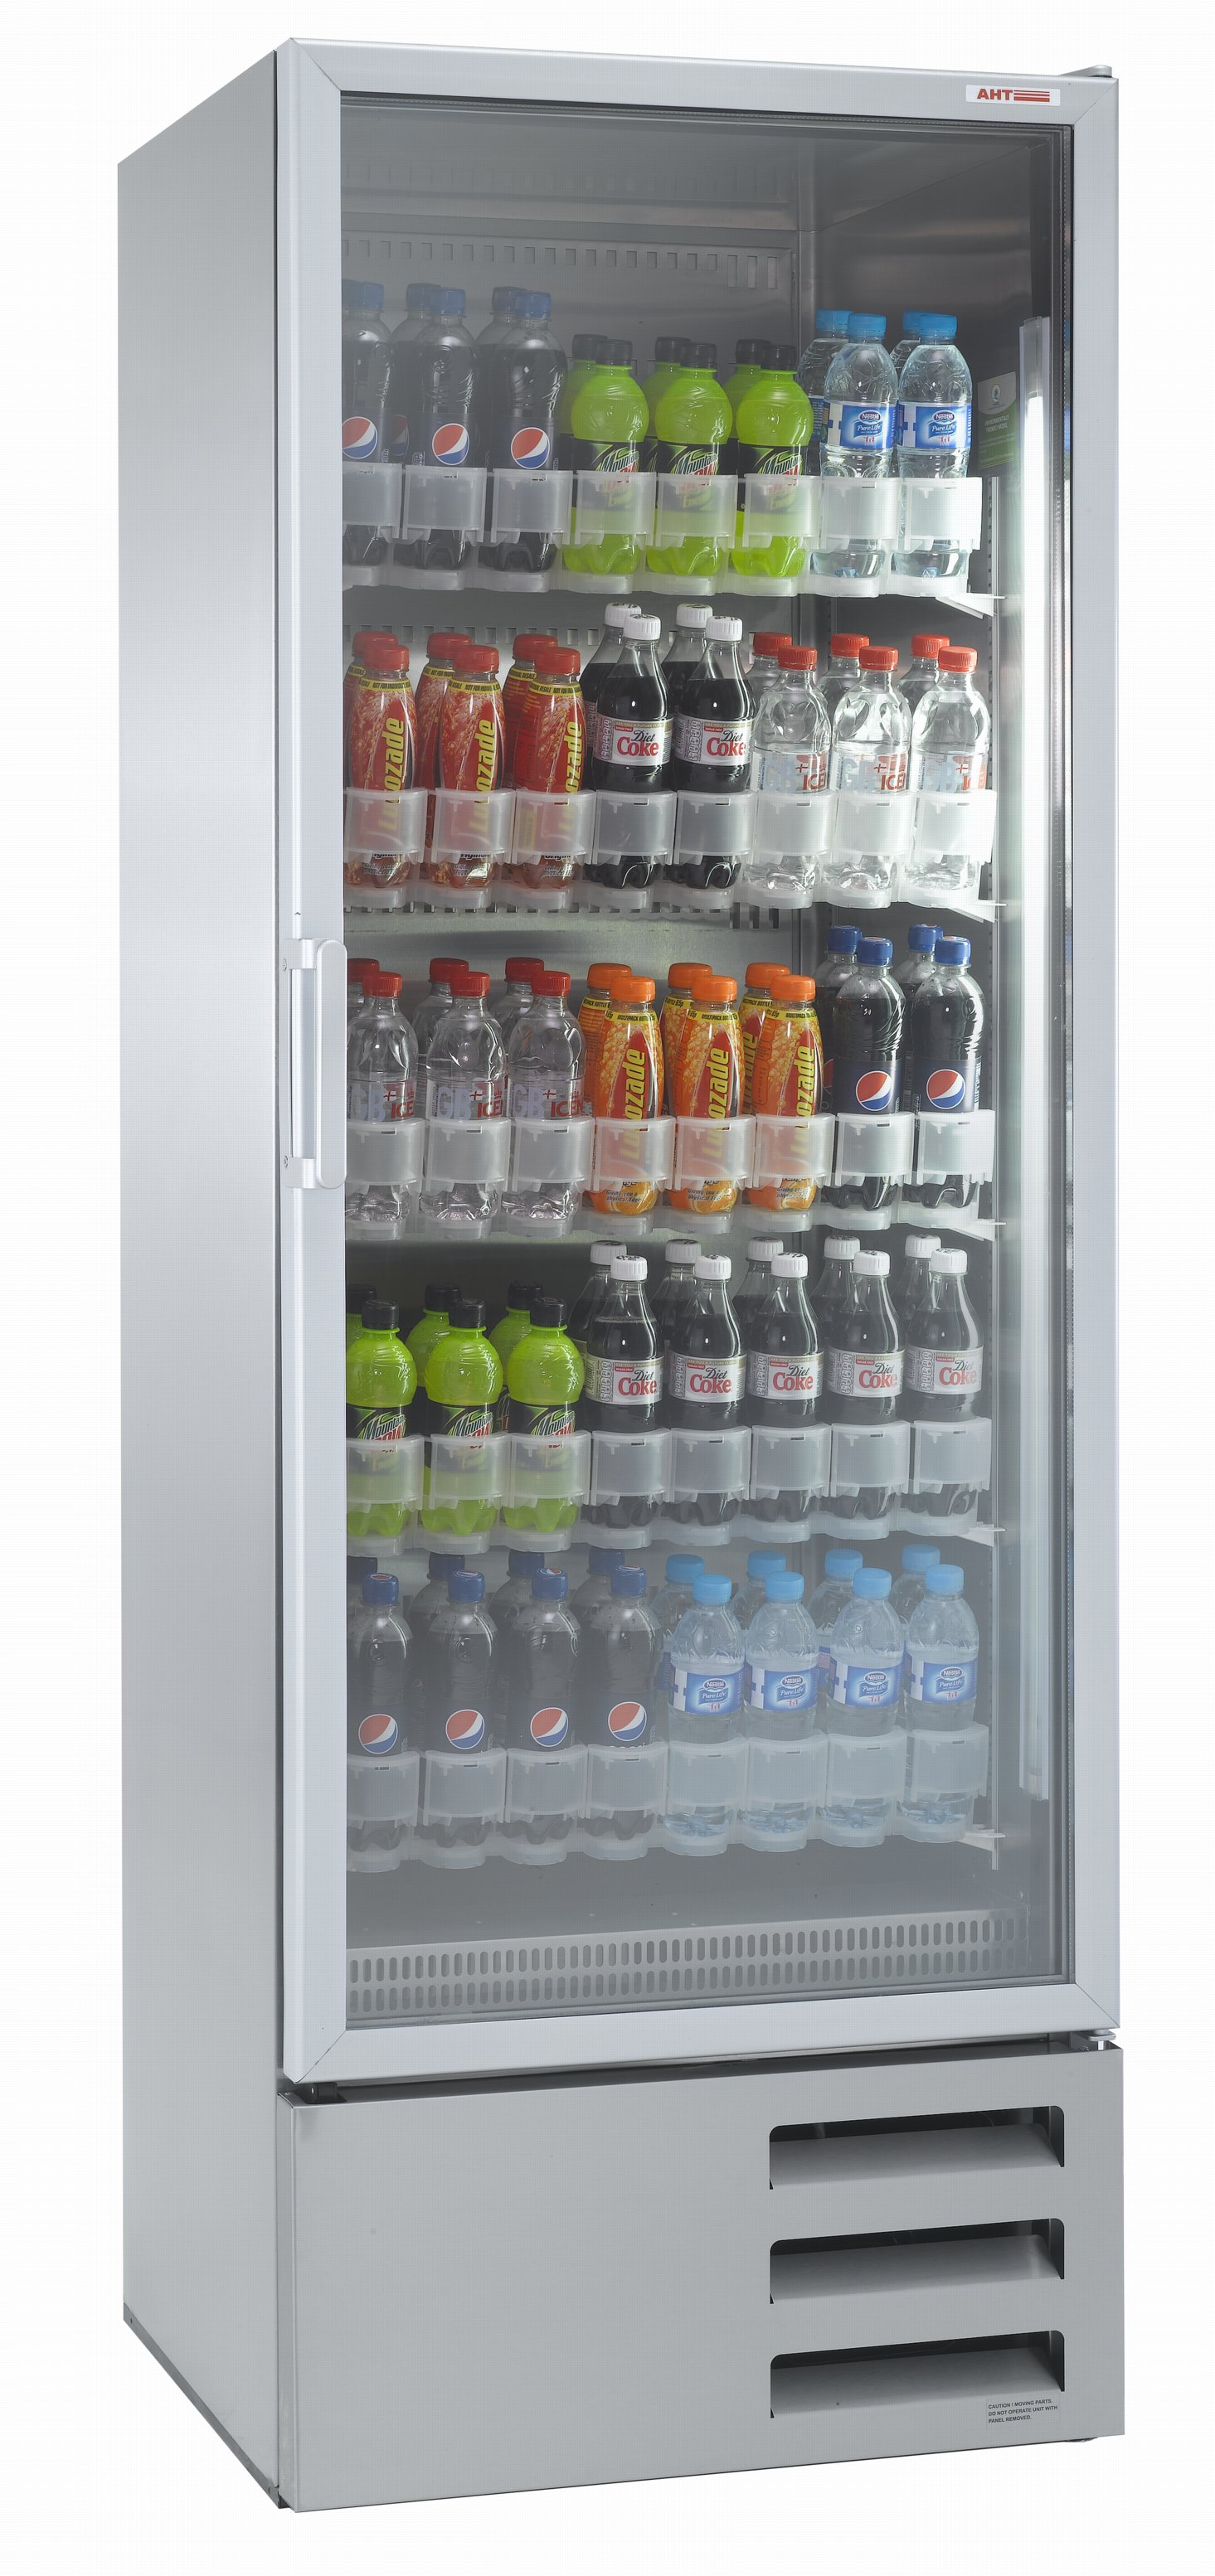 Bottle Coolers:  We Are The Leading Best Quality Diaplay Bottle Coolers In Coimbatore, Tamil Nadu, India.We Are The Leading Best Quality Bottle Coolers Suppliers In Coimbatore, TamilNadu, India,